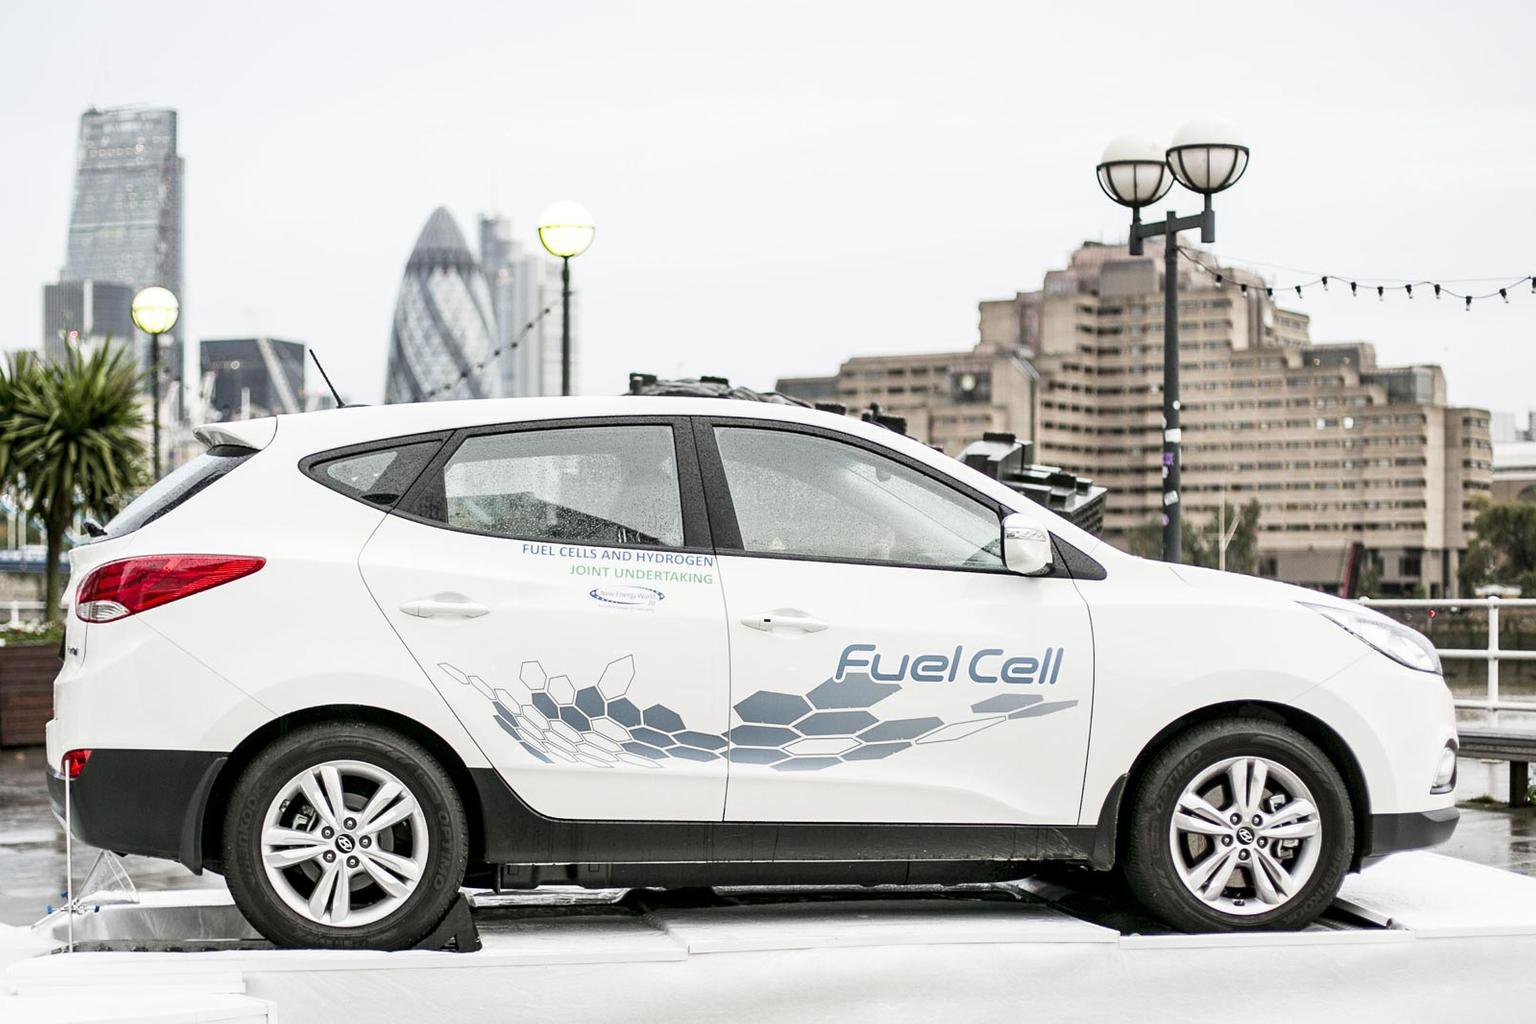 Hyundai plans fuel cell and performance models